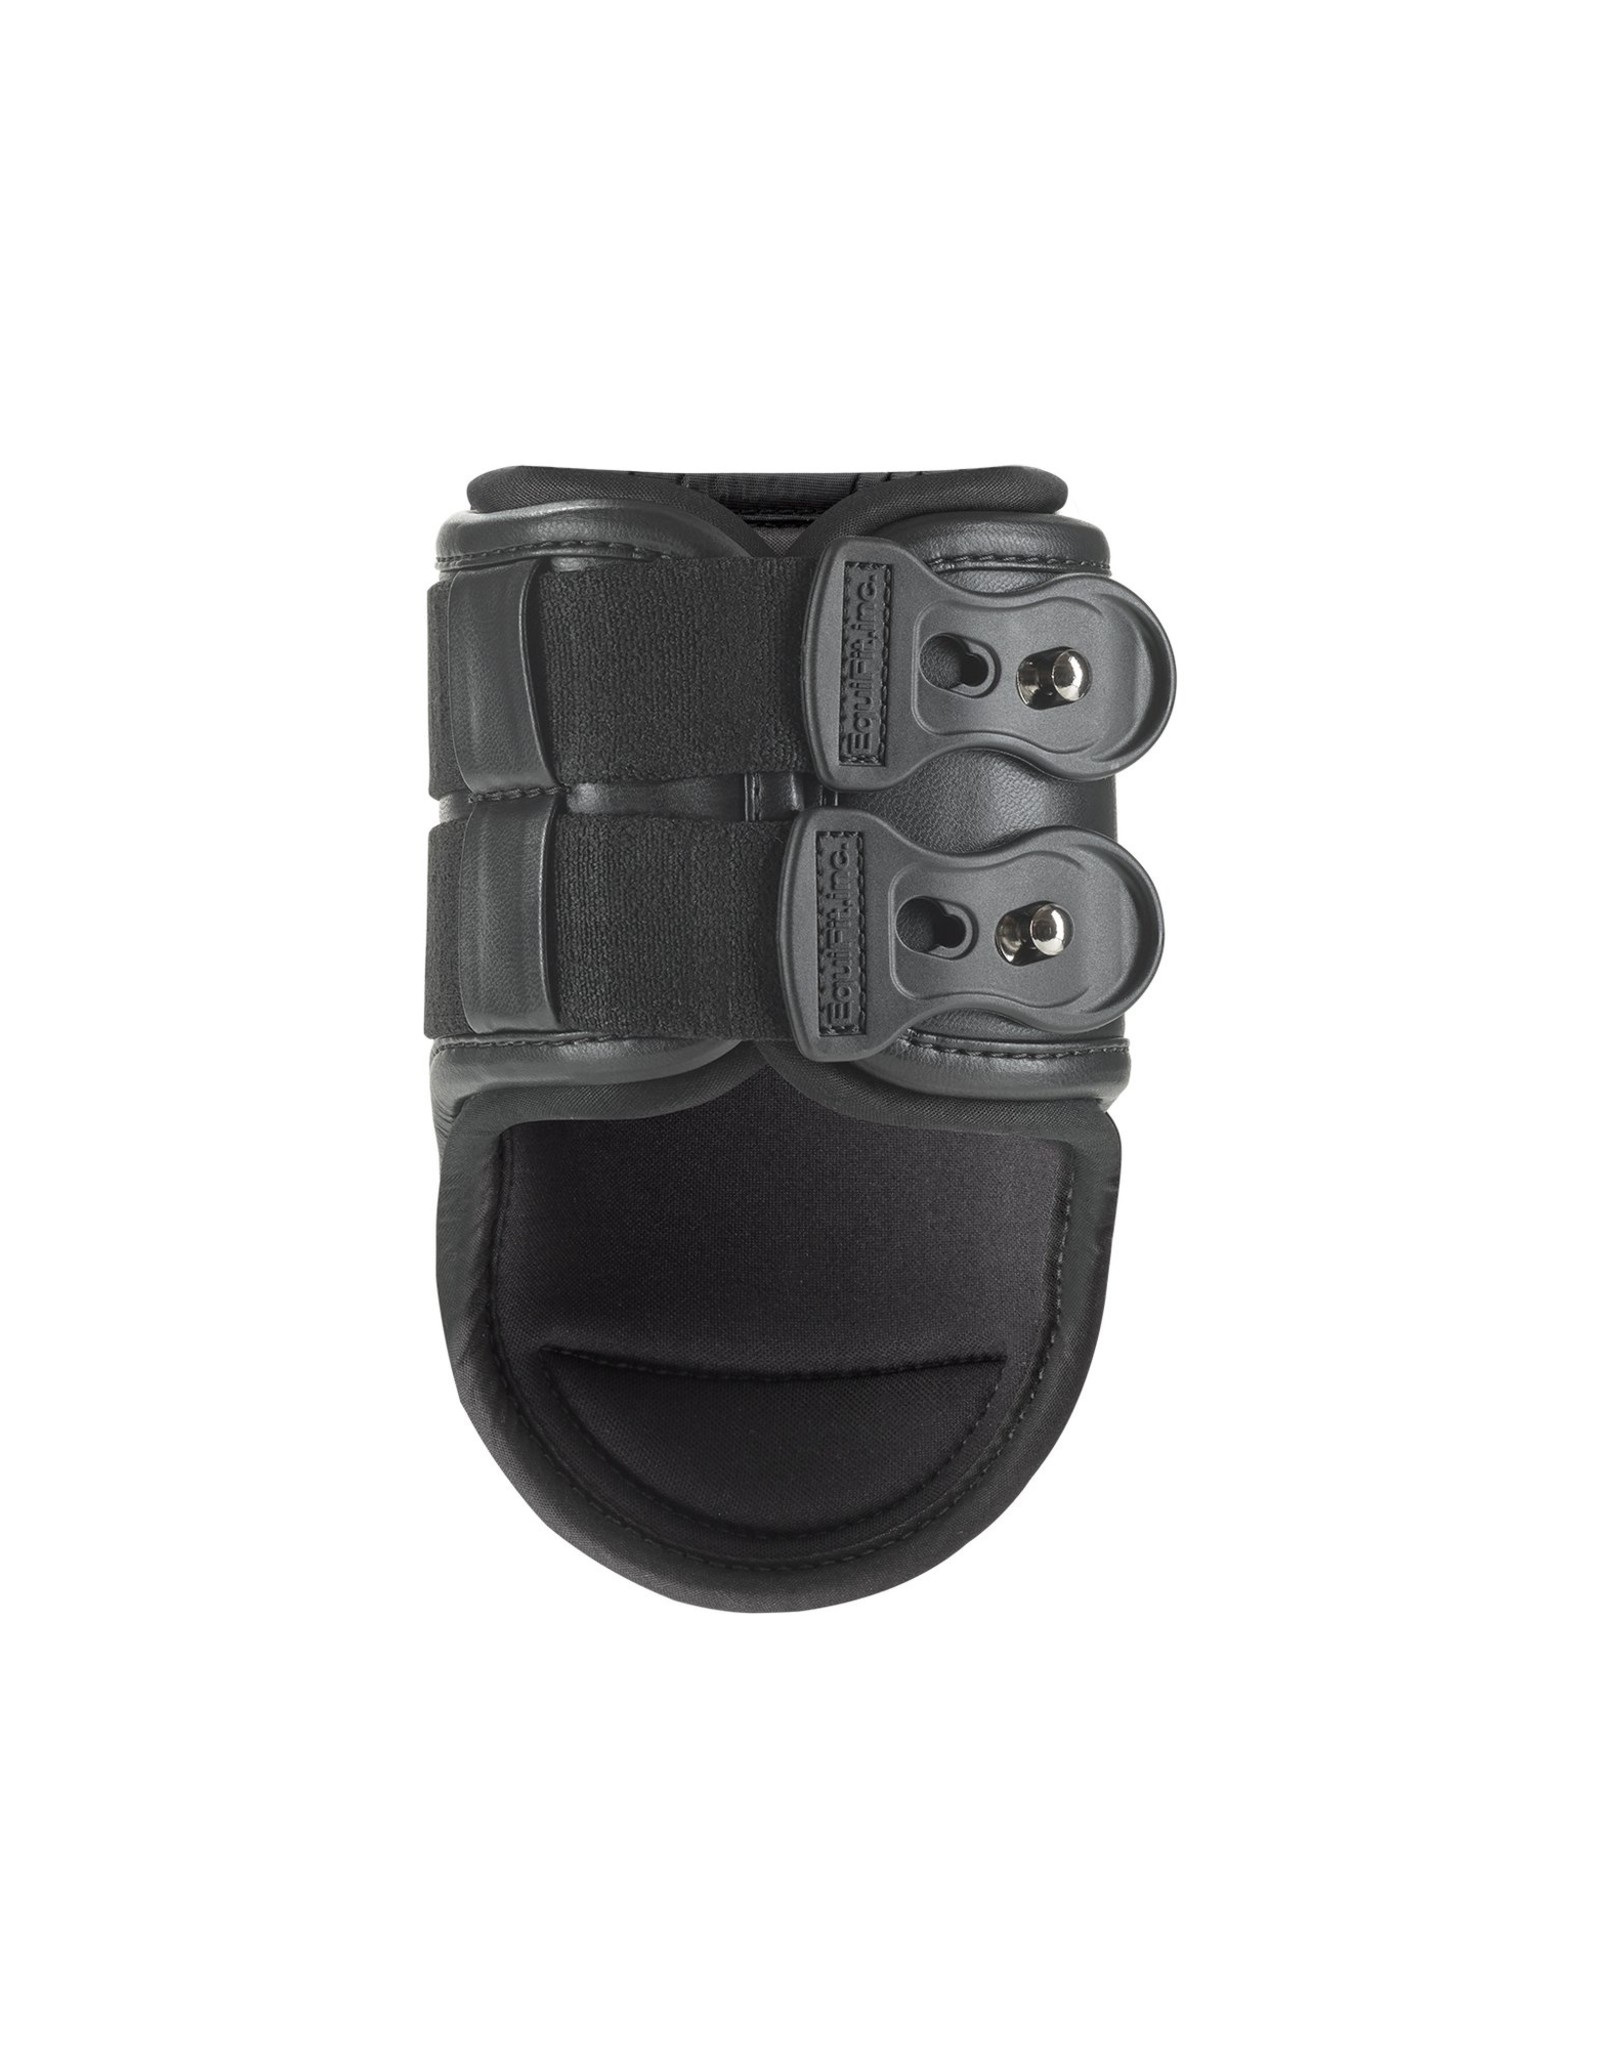 EquiFit Eq-Teq Ankle Boots